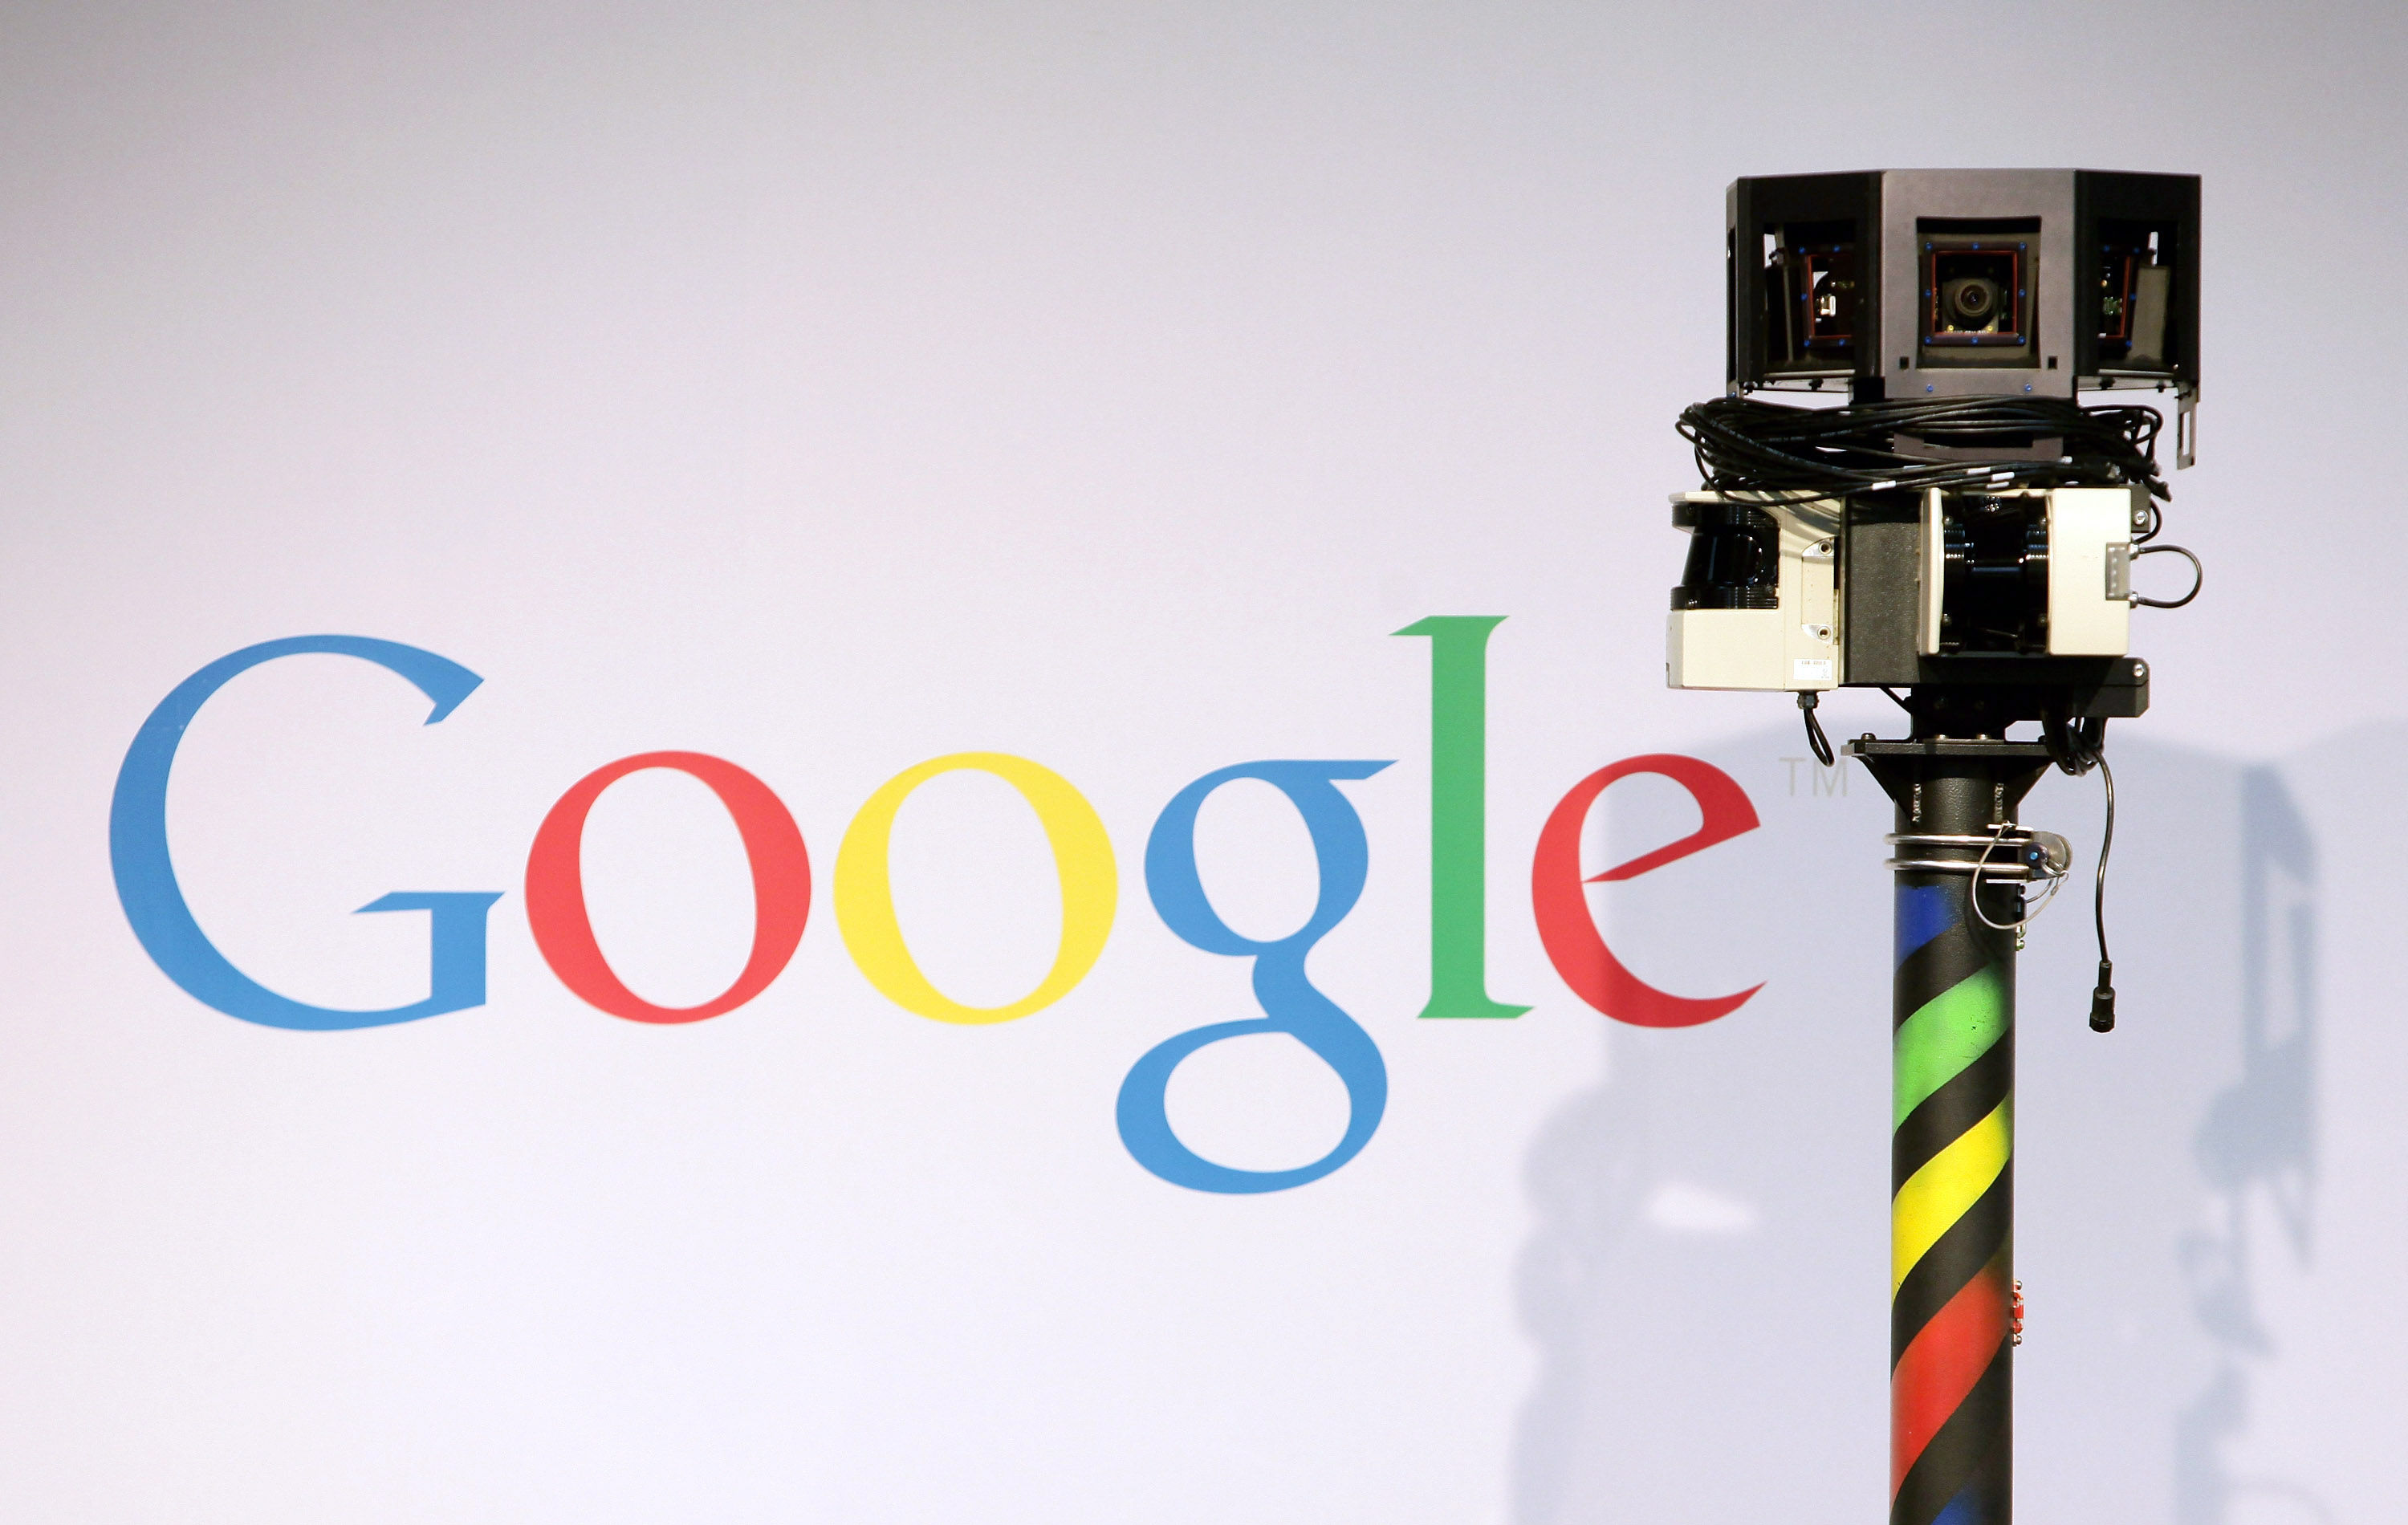 Google Search for Android: Ok Google, Take a Photo or Take a Video